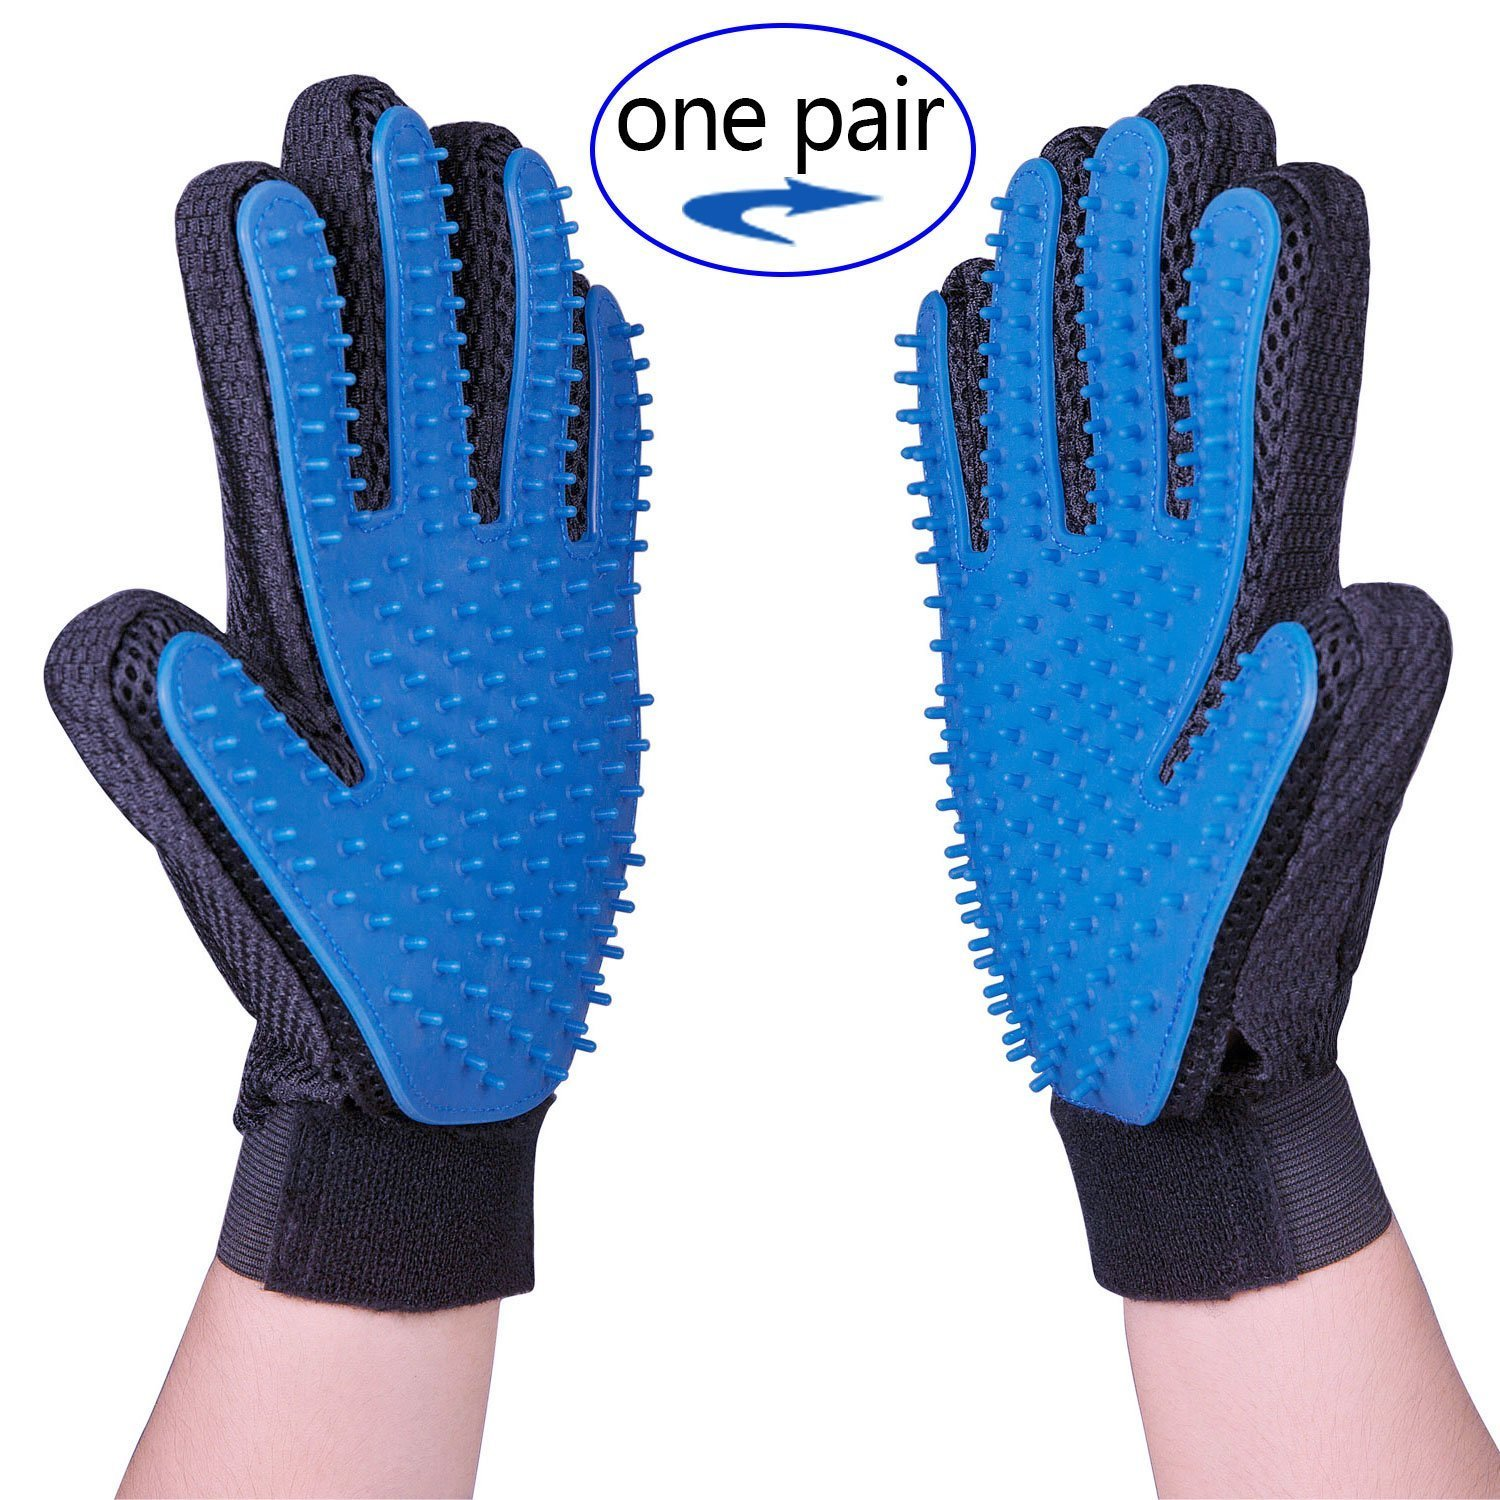 Pet Grooming Gloves Tool for Dog Cat,Shedding Comb Hair Remover for Dog Cat,Pet Dog Cat Massage Tool & Bathing Brush for Shedding Long Short Or Curly Hair Comb,One Pair (Left & Right Hands Included)